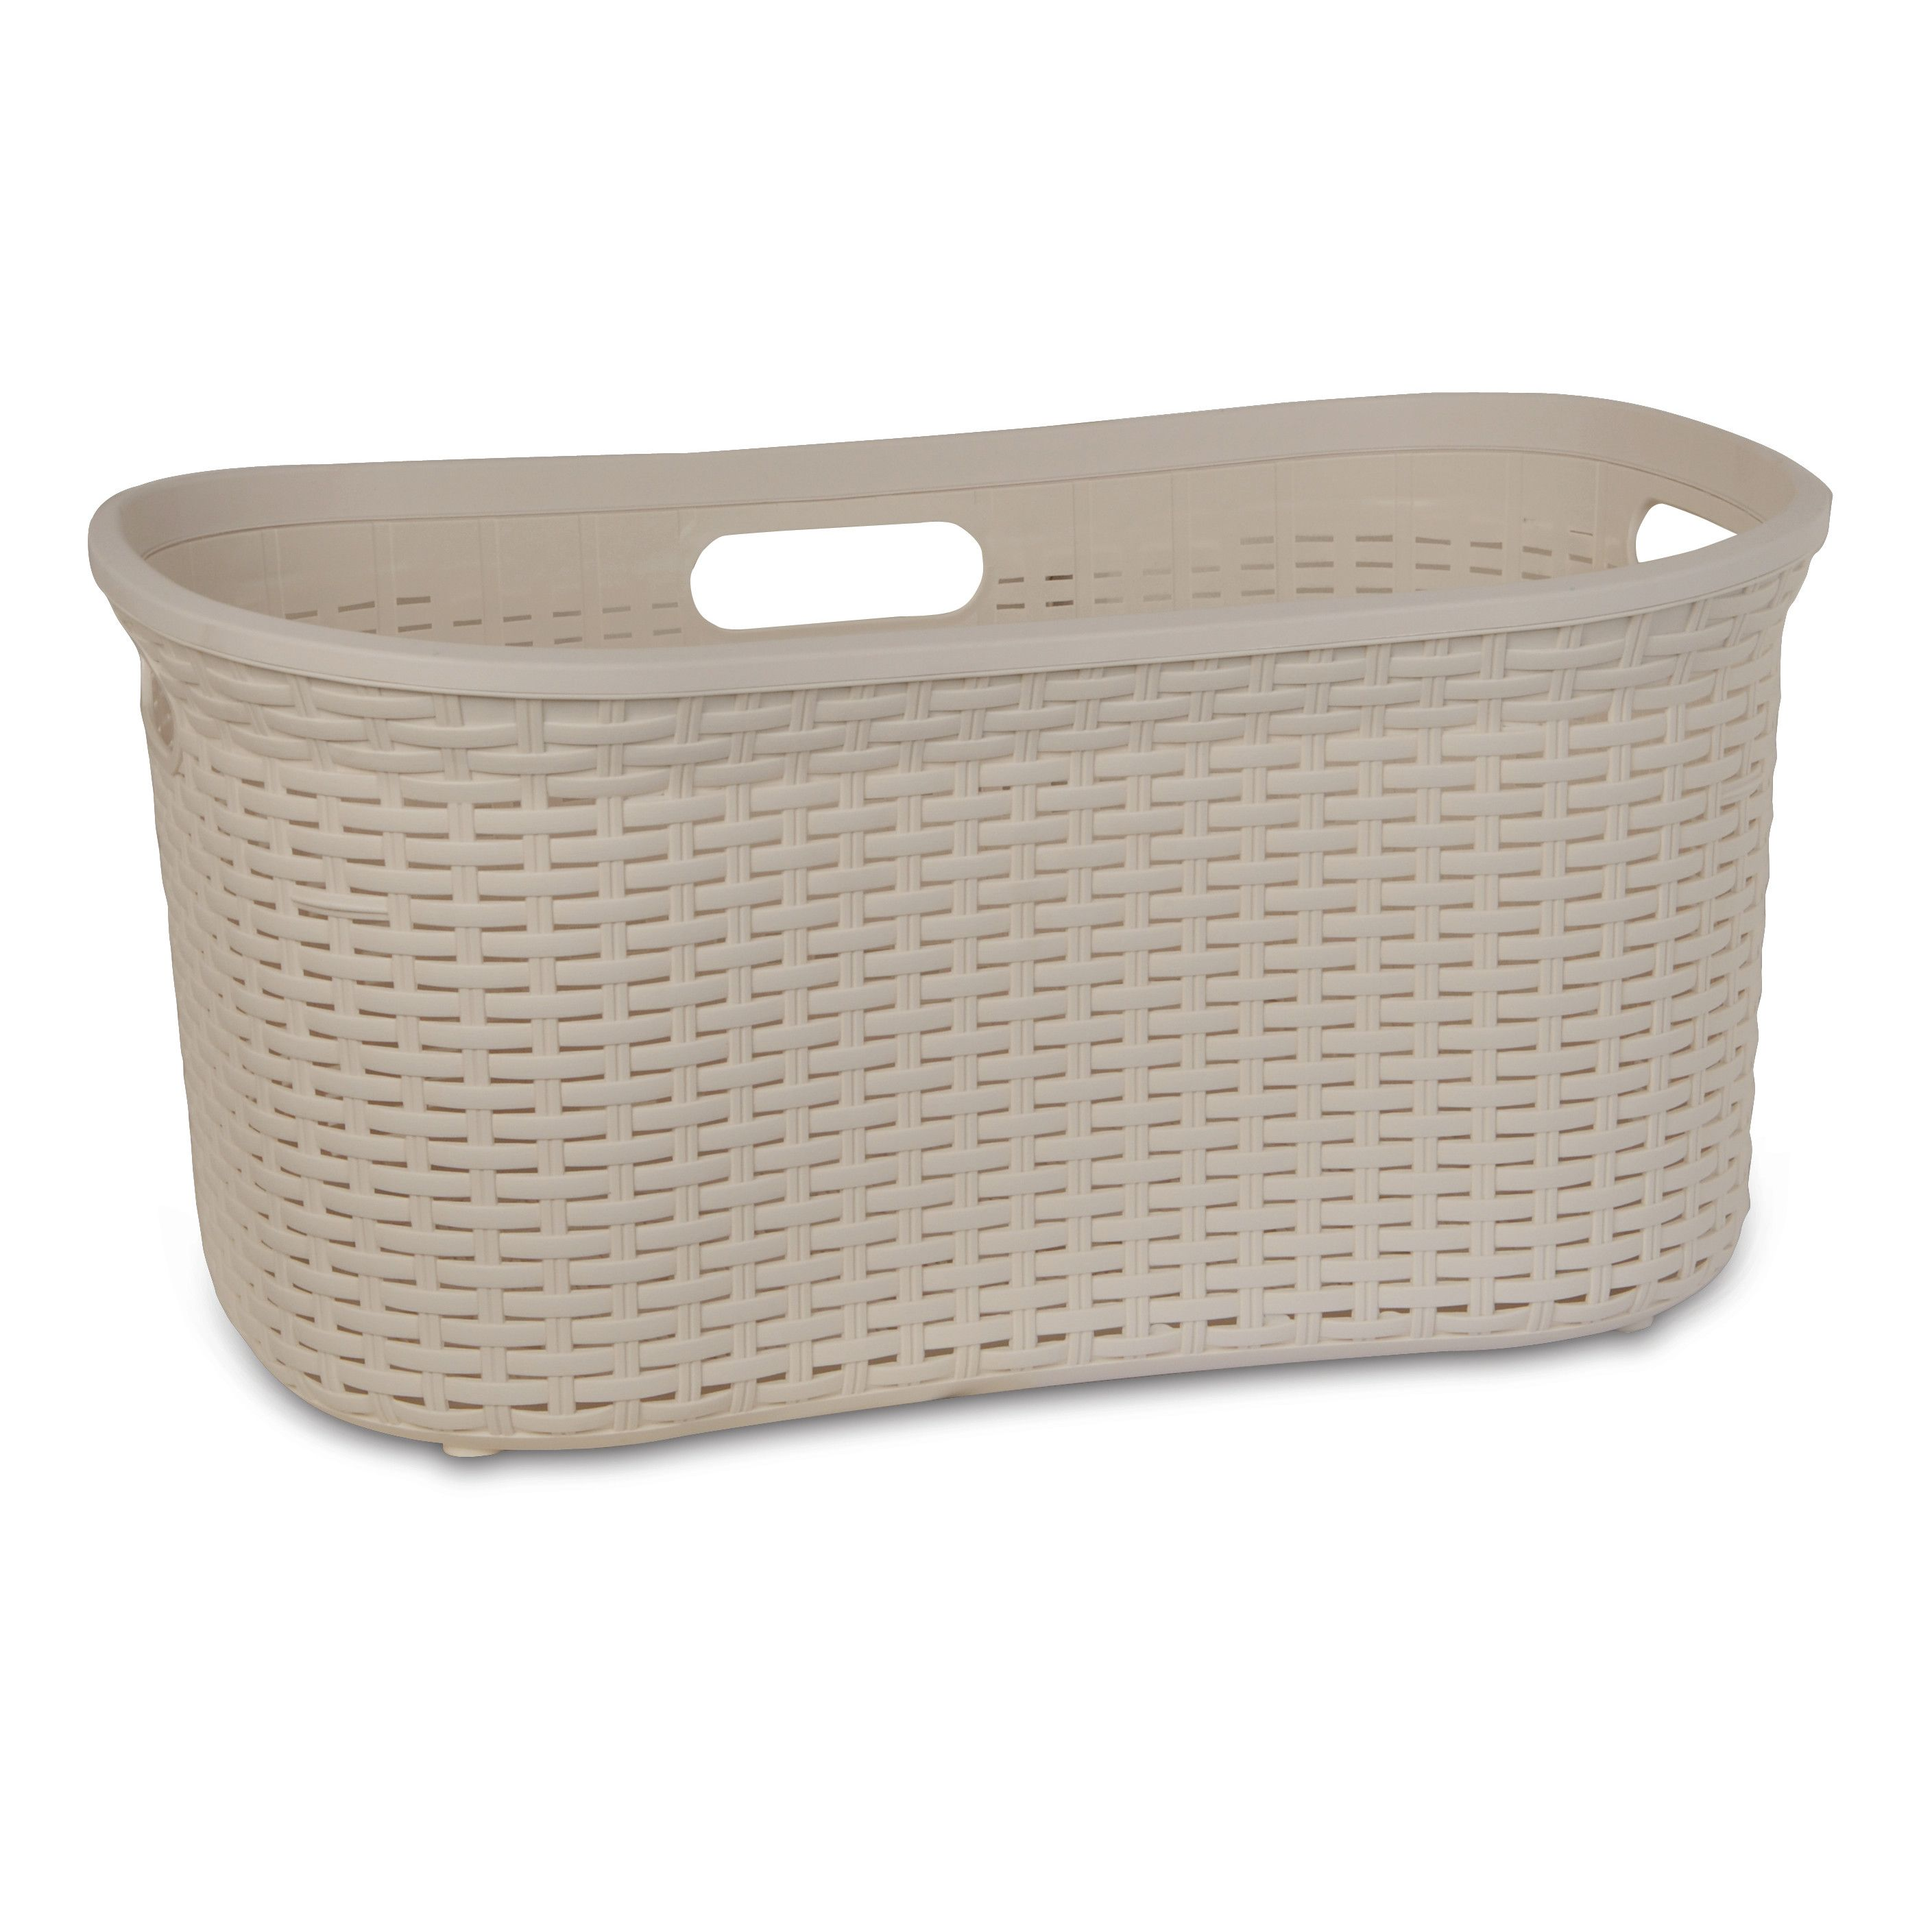 47 99 Shop Wayfair For Hampers Baskets To Match Every Style And